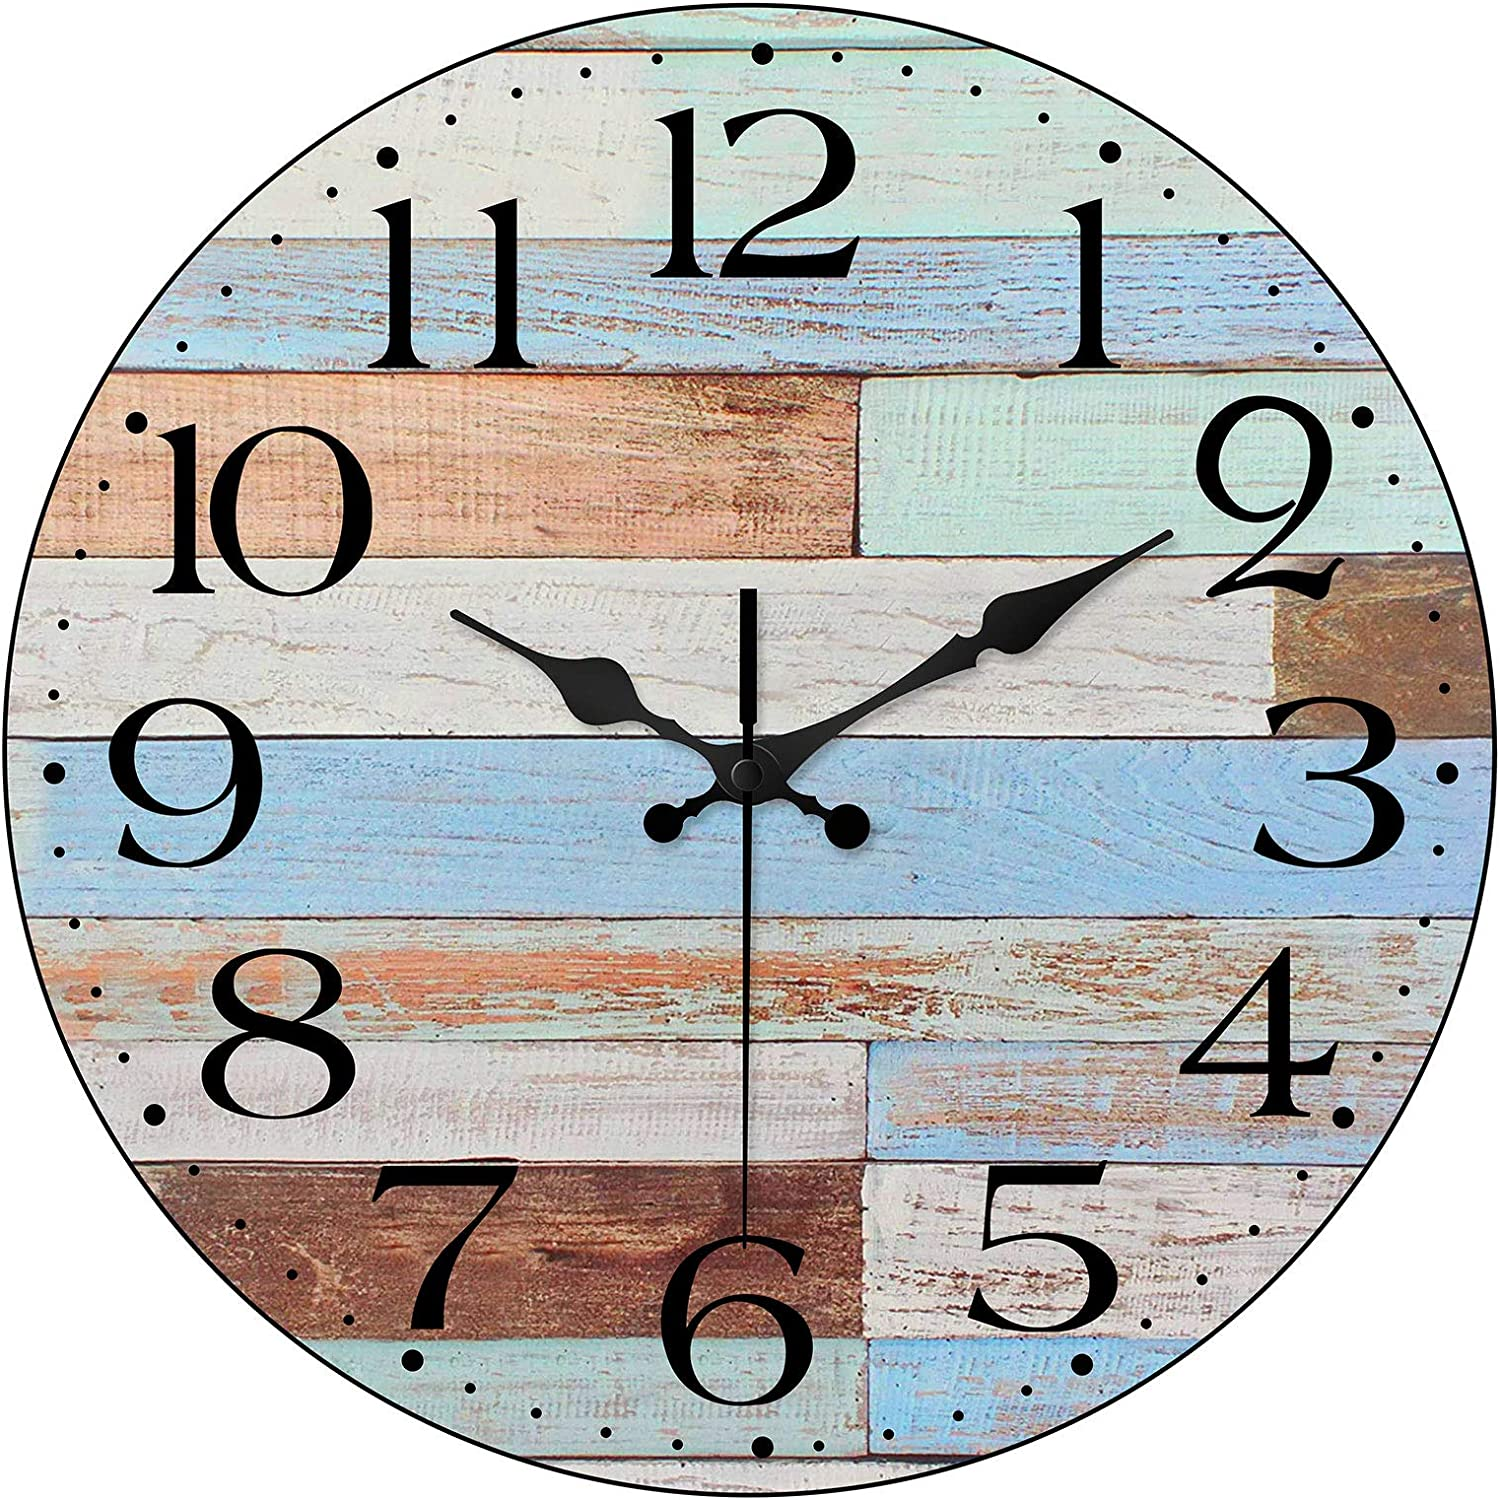 LAMIKO Wall Clocks Non-Ticking Silent 12 Inch Battery Operated Vintage Coastal Quartz Decro Clock Easy to Read for Room/Home/Kitchen/Bedroom/Office/School, Worn Blue